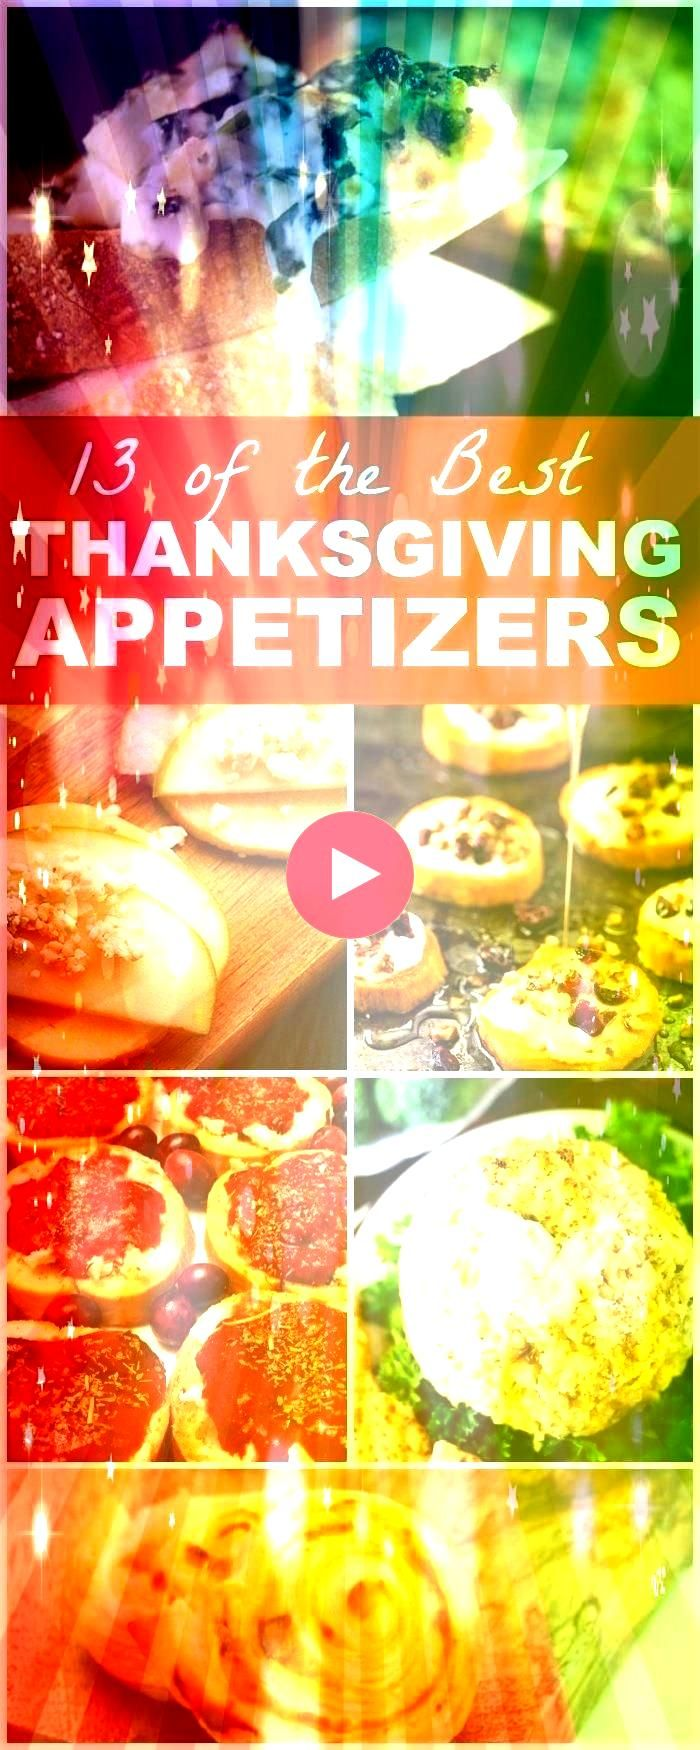 Appetizers that will please a crowd Get your taste buds ready Easy Tha Easy Thanksgiving Appetizers that will please a crowd Get your taste buds ready Easy Thanksgiving A...